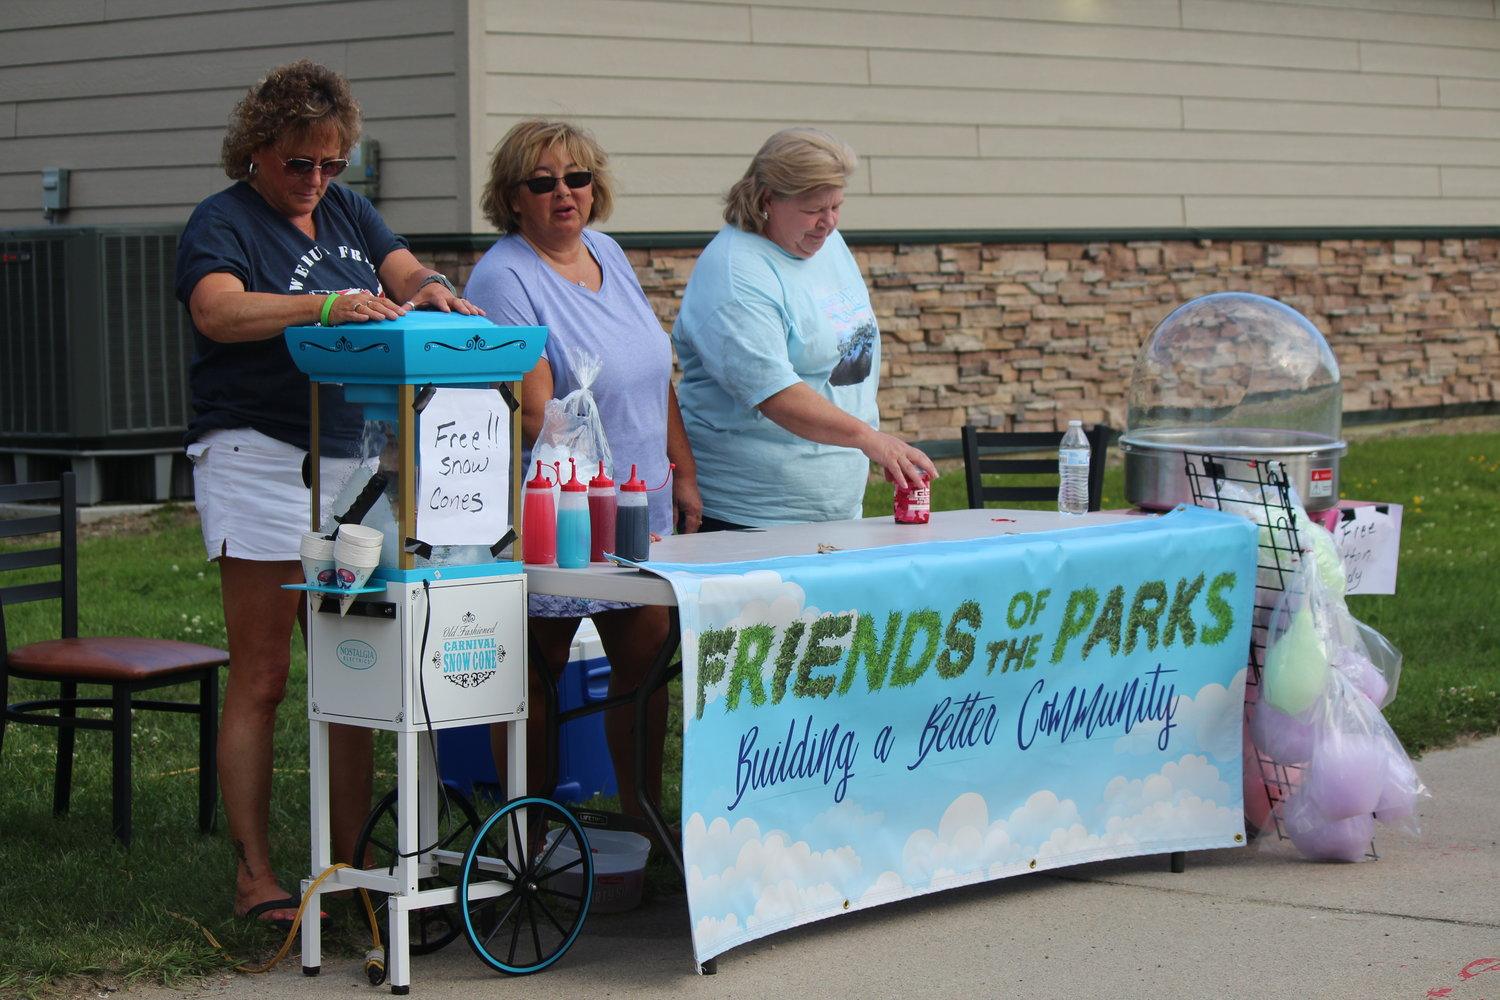 Diane Brunner, Sue Thomas and Carrolle Wood (left to right) offered guests free snow cones and cotton candy courtesy of Friends of the Parks.